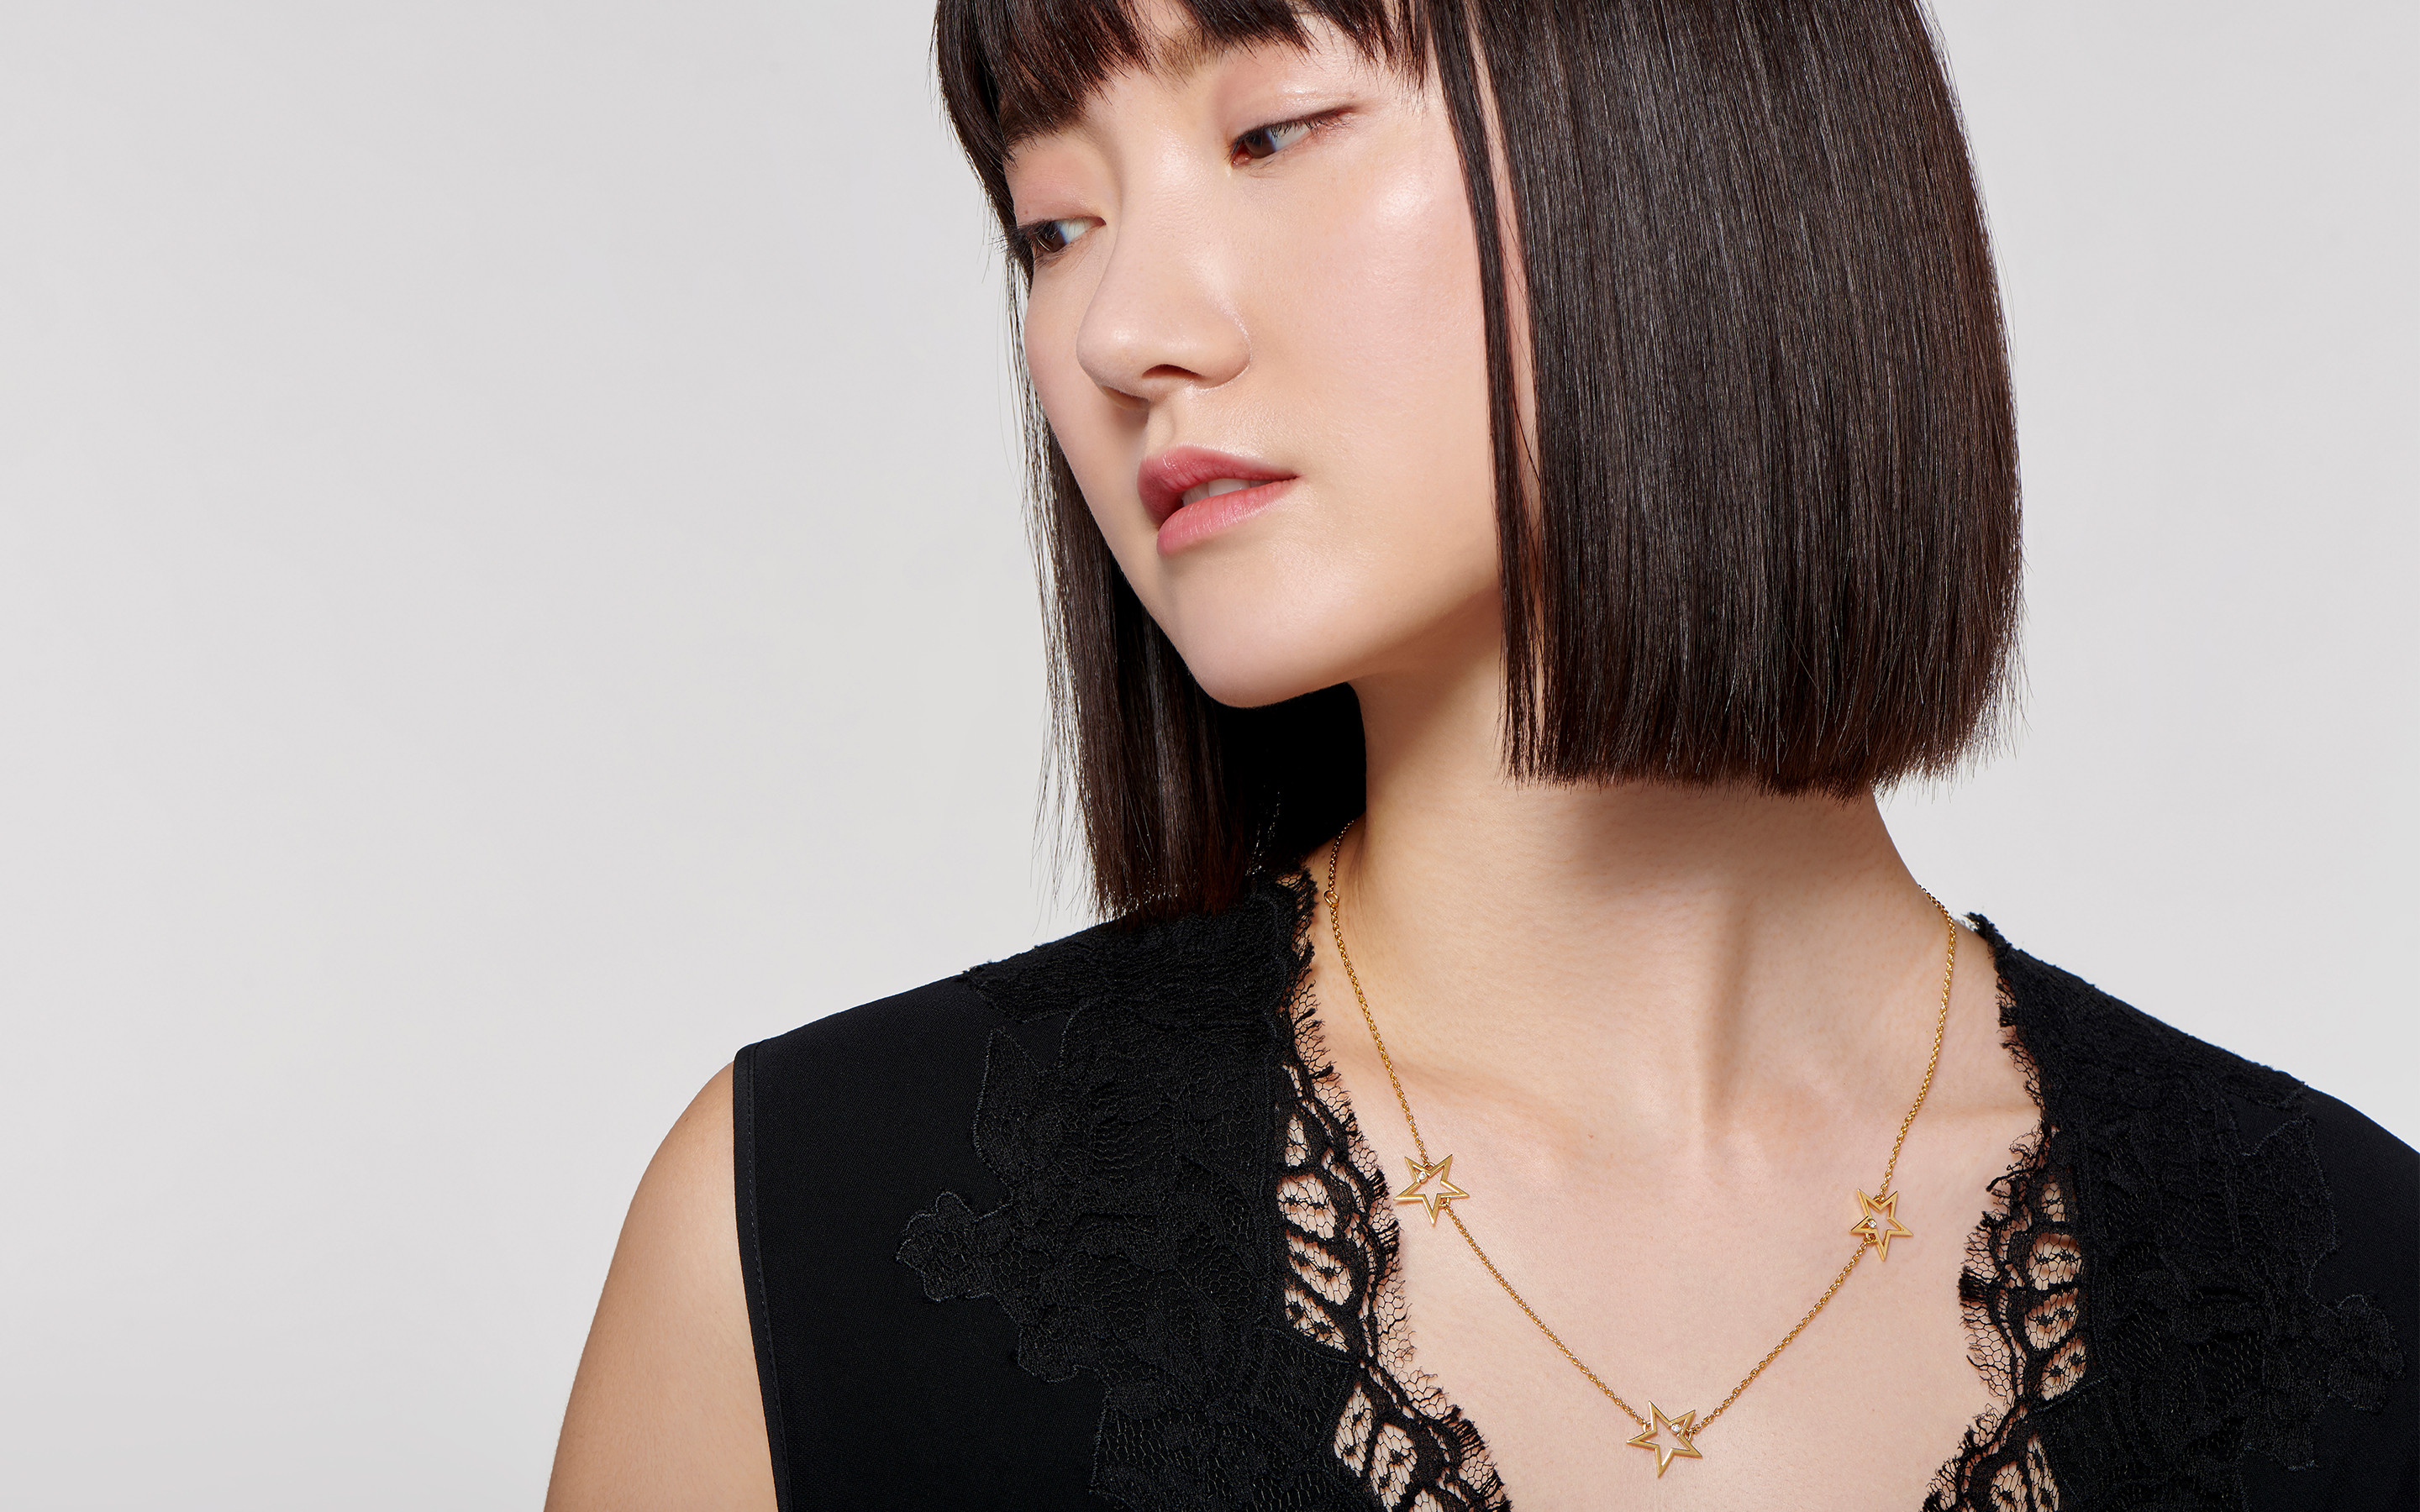 Asian woman with a bob cut sports a 22 karat gold chain decorated with golden stars